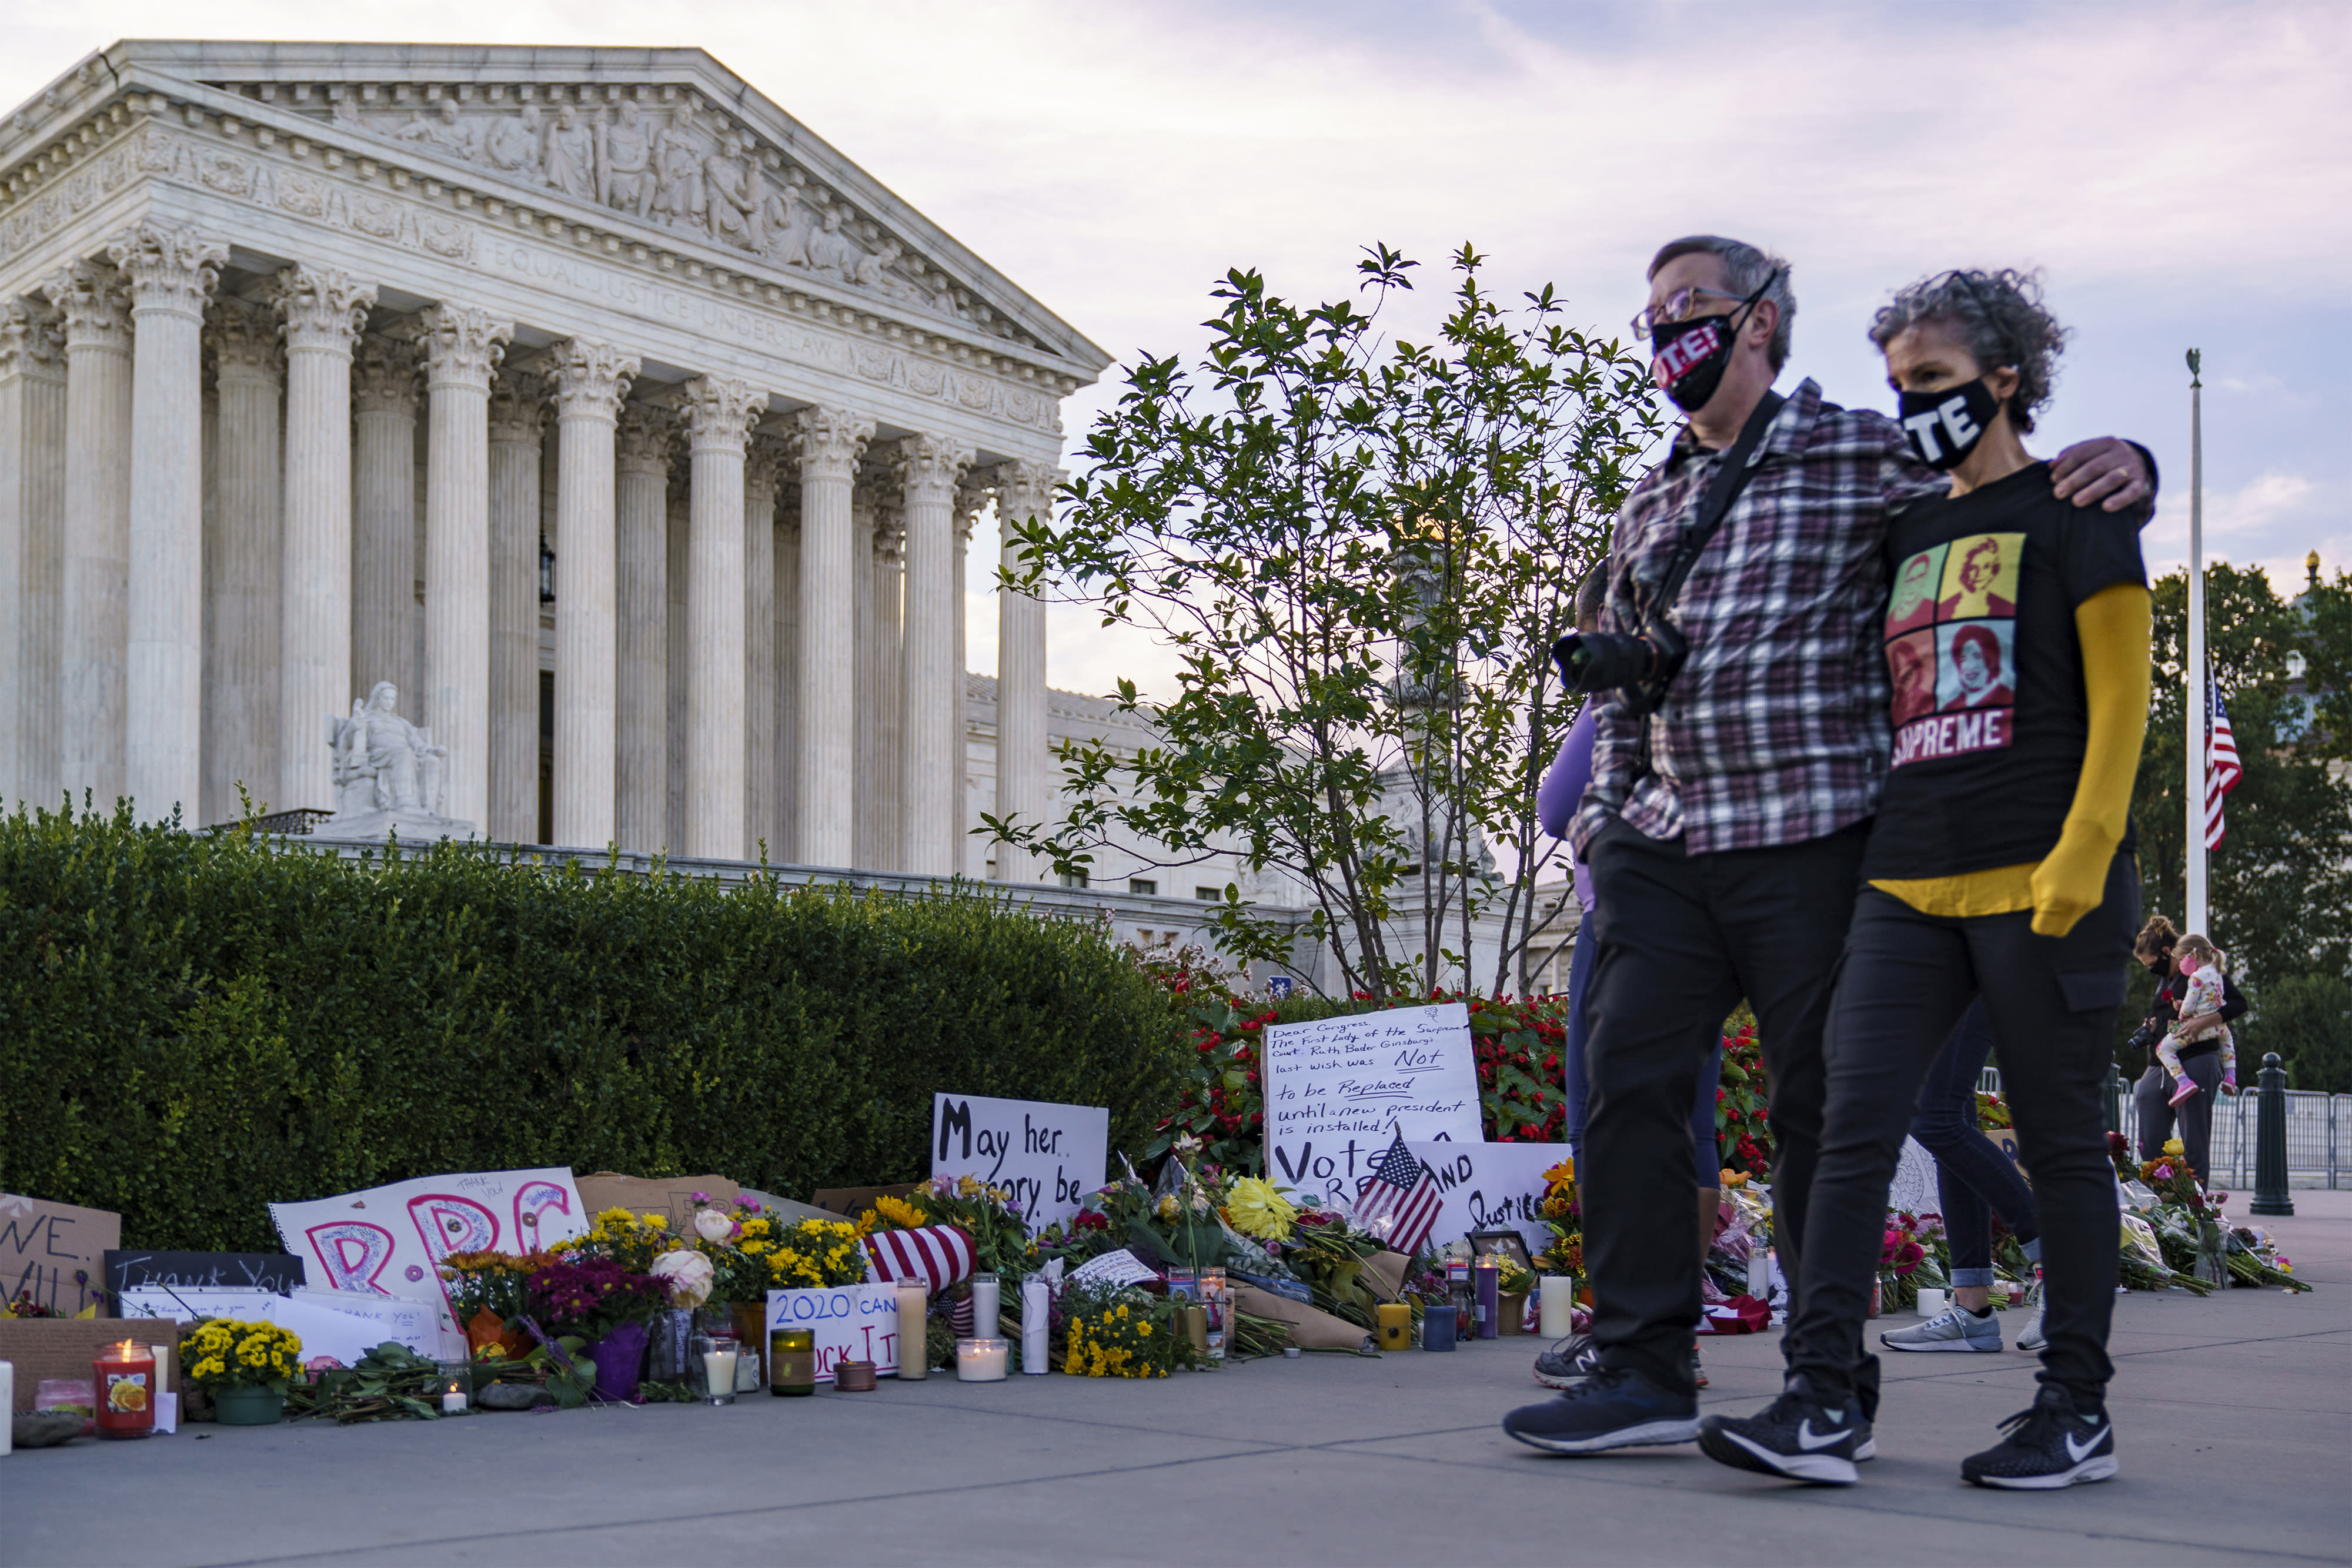 People gather at the Supreme Court on the morning after the death of Justice Ruth Bader Ginsburg, 87, one of the high court's liberal justices, and a champion of gender equality, in Washington, Saturday, Sept. 19, 2020. (AP Photo/J. Scott Applewhite)